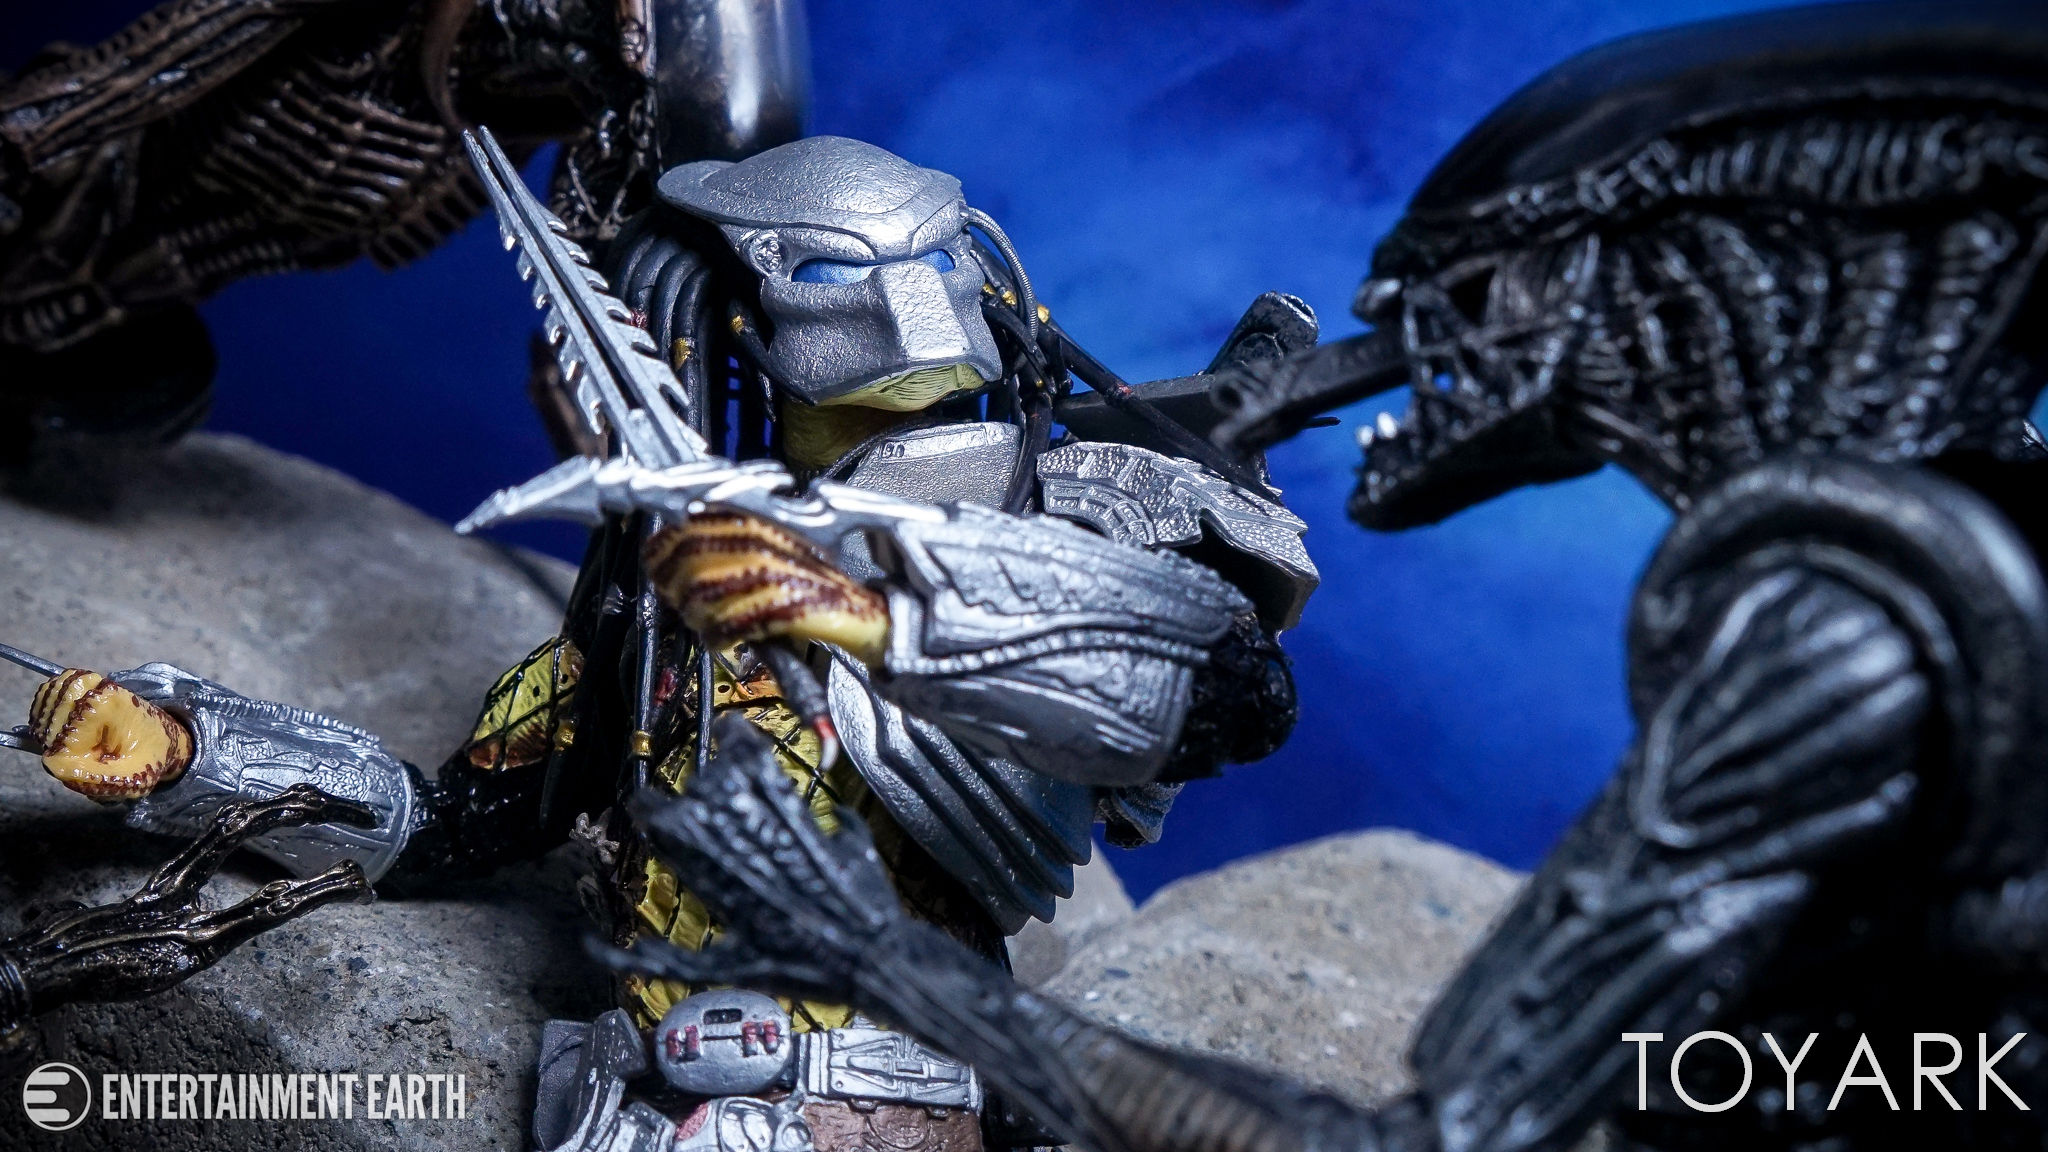 http://news.toyark.com/wp-content/uploads/sites/4/2017/04/NECA-Youngblood-Predator-042.jpg